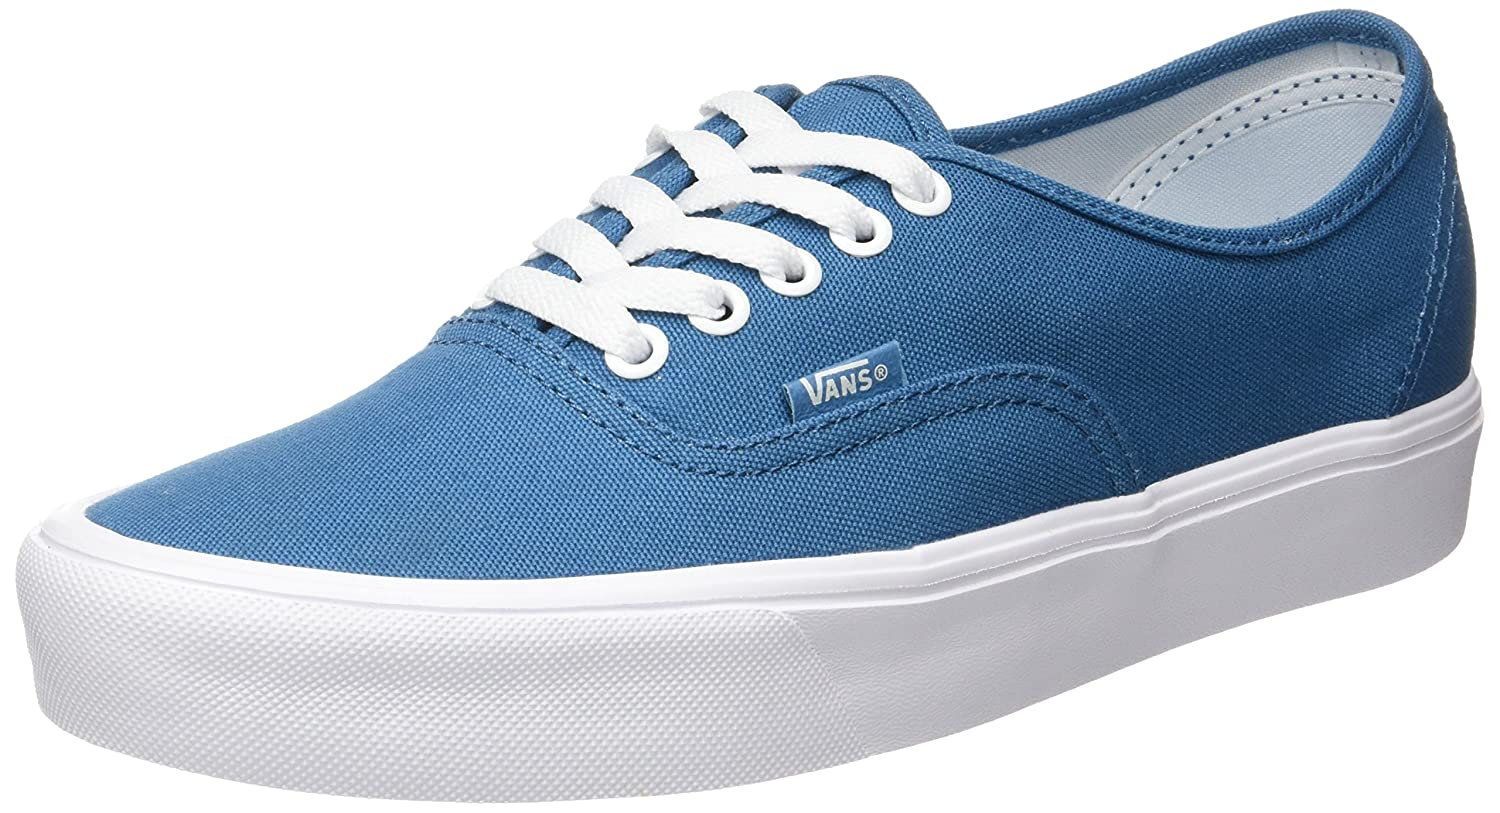 Vans Authentic Lite B019NBQQOA 8.5 D(M) US